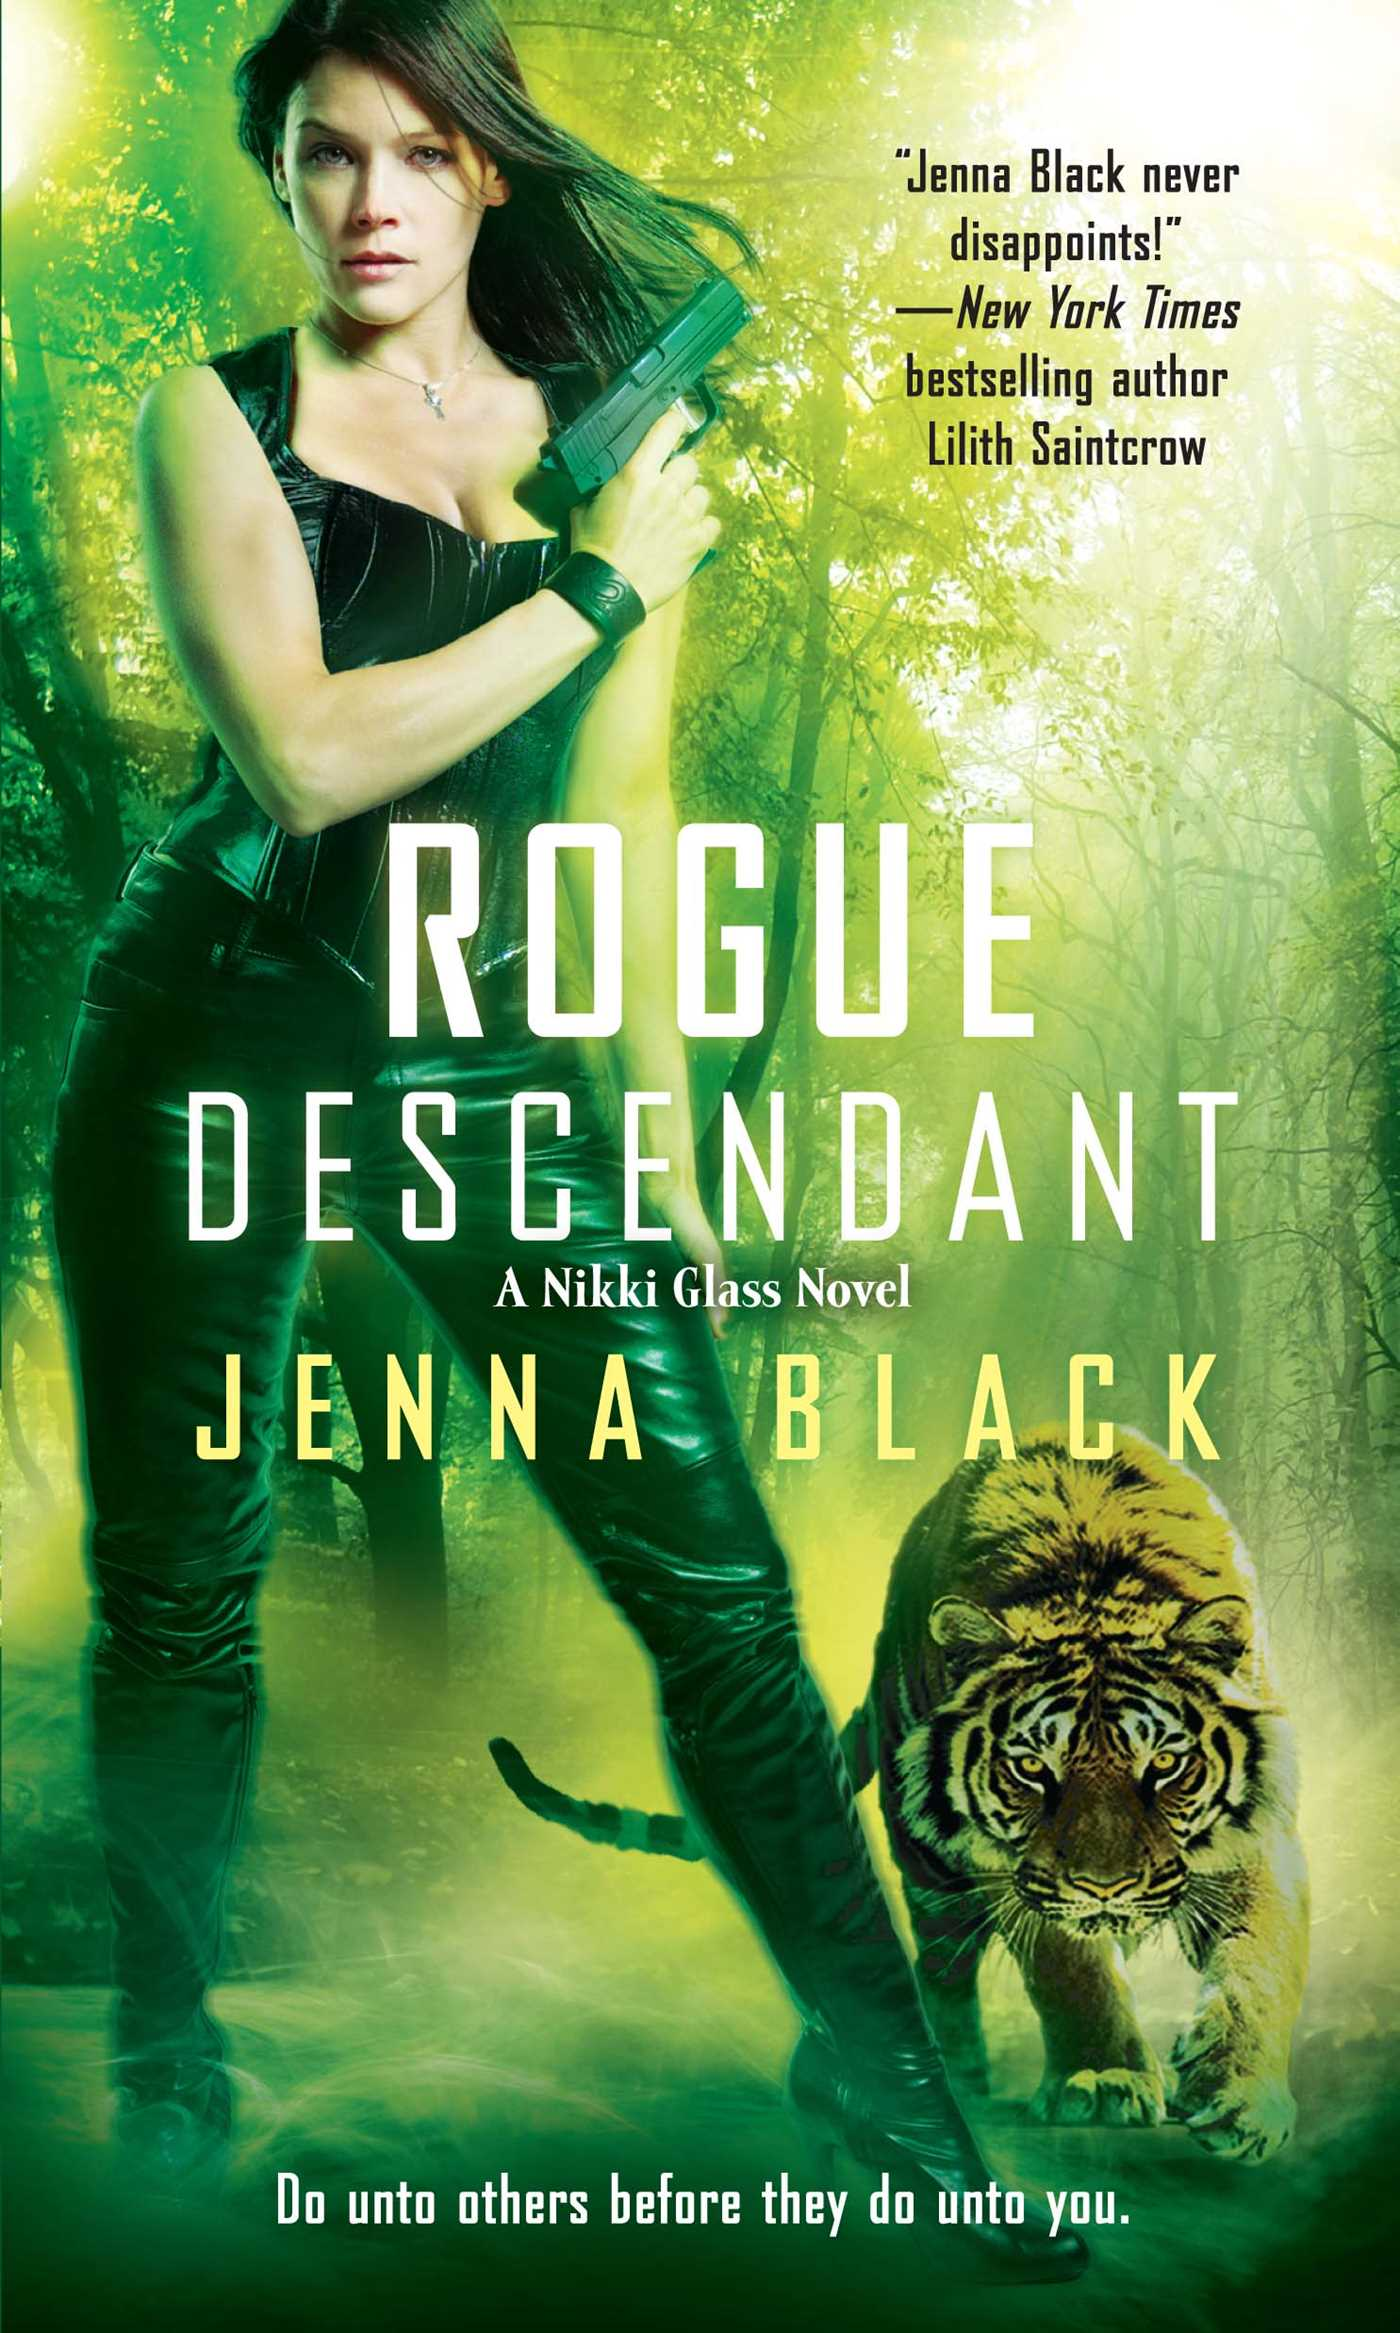 Rogue descendant 9781476700113 hr